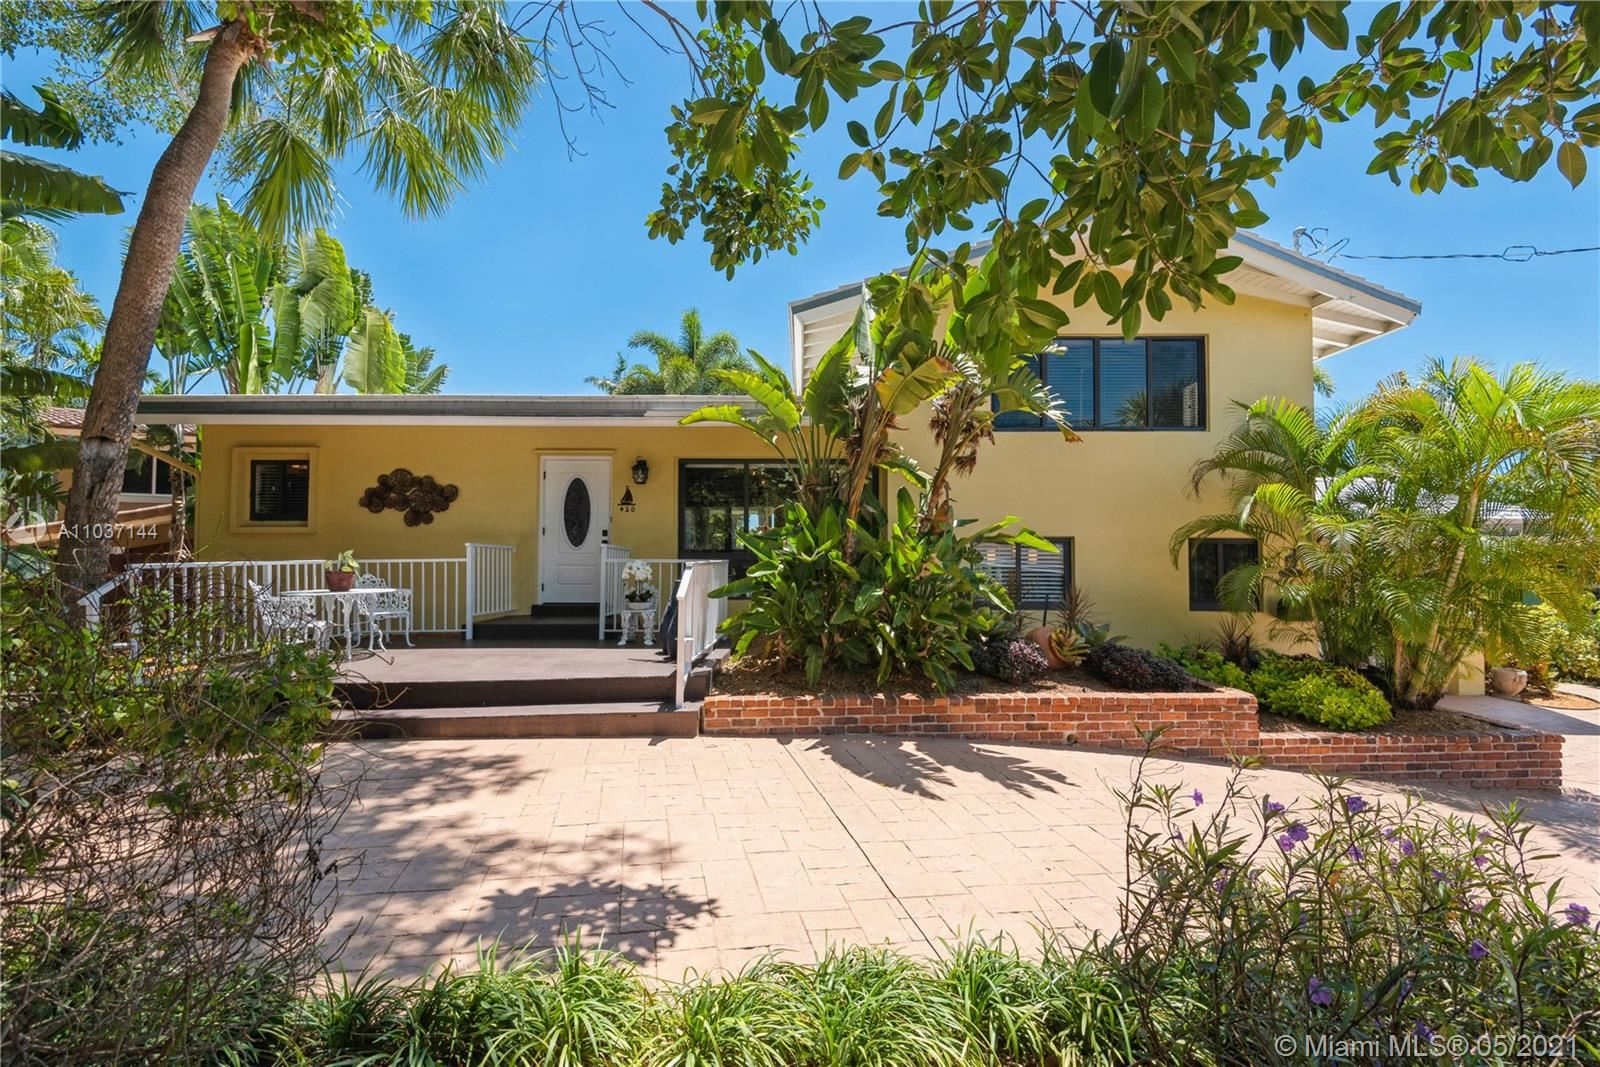 Photo of 420 SW 18th Ave, Fort Lauderdale, FL 33312 (MLS # A11037144)